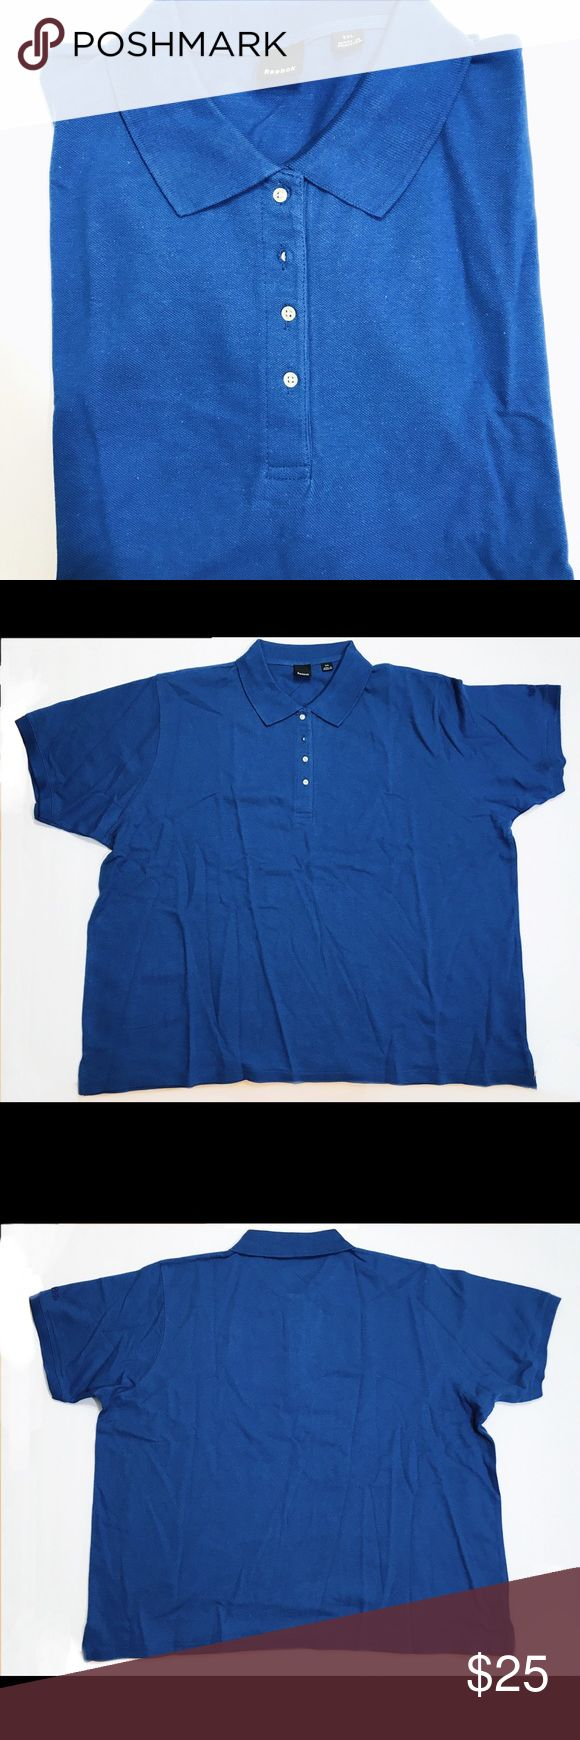 """Men's Reebok Polo-shirt Blue 3XL Shirt 100% cotton Men's Reebok Polo-shirt Blue OR black SZ S,3XL Shirt  Reebok Logo 100% cotton New no tags   Check measurements below for correct fit:    Measurements laid flat (approx):    Size 3XL:  Armpit to Armpit: 27 1/2""""   Sleeves: 9""""   Length: 26  1/2""""   I do my very best to accurately describe each item and if you need additional information,  please feel free to contact me.   I value your continued support and hope you will continue to enjoy the…"""